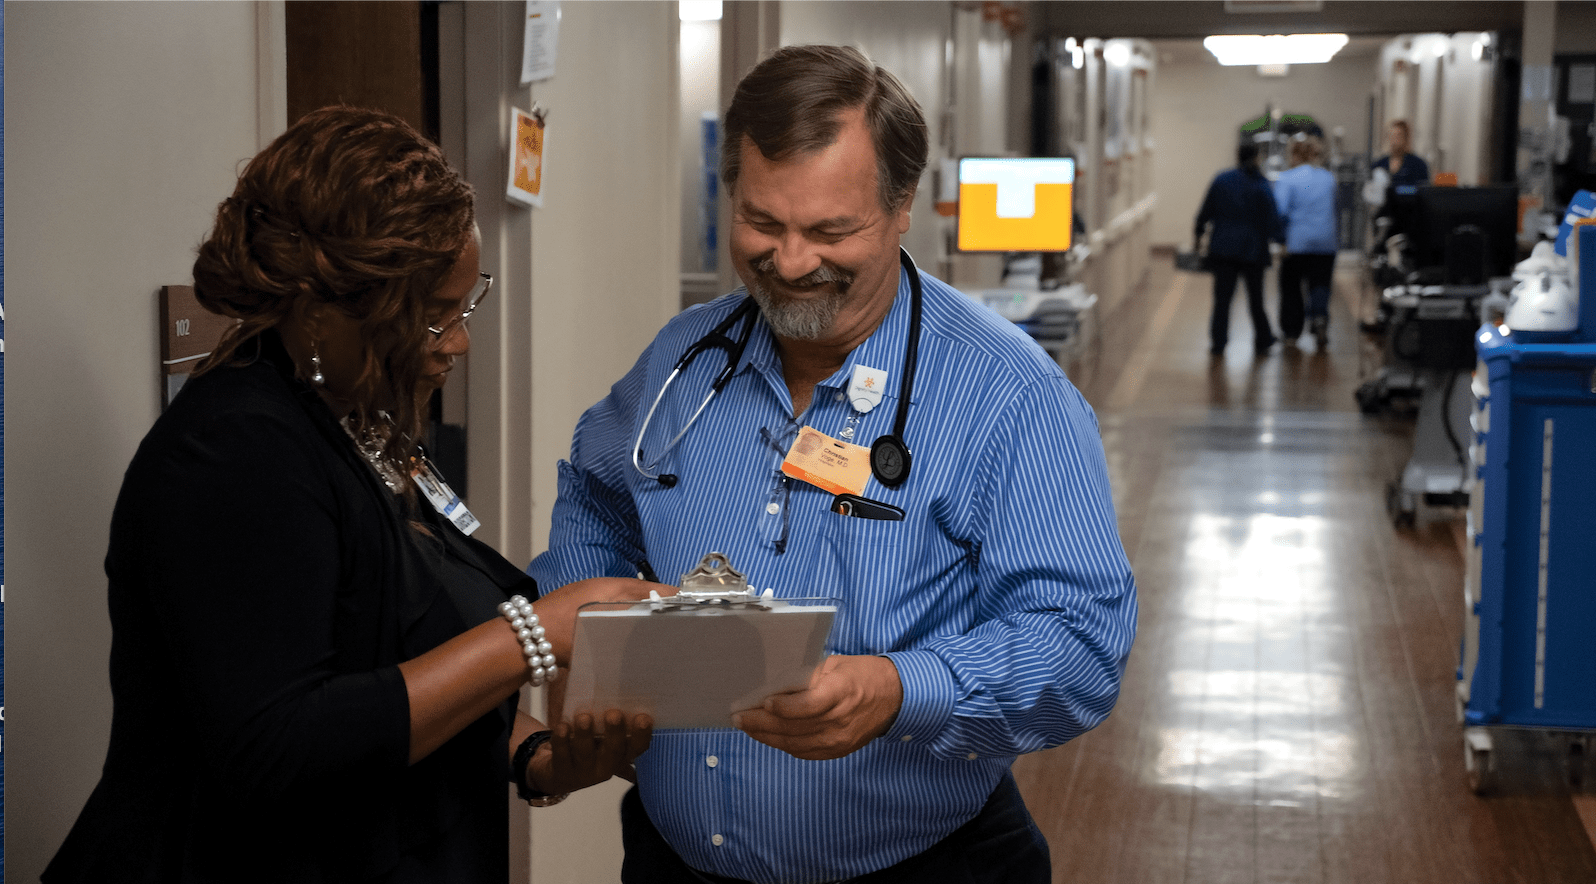 Doctor and nurse looking at a clip board at French Hospital